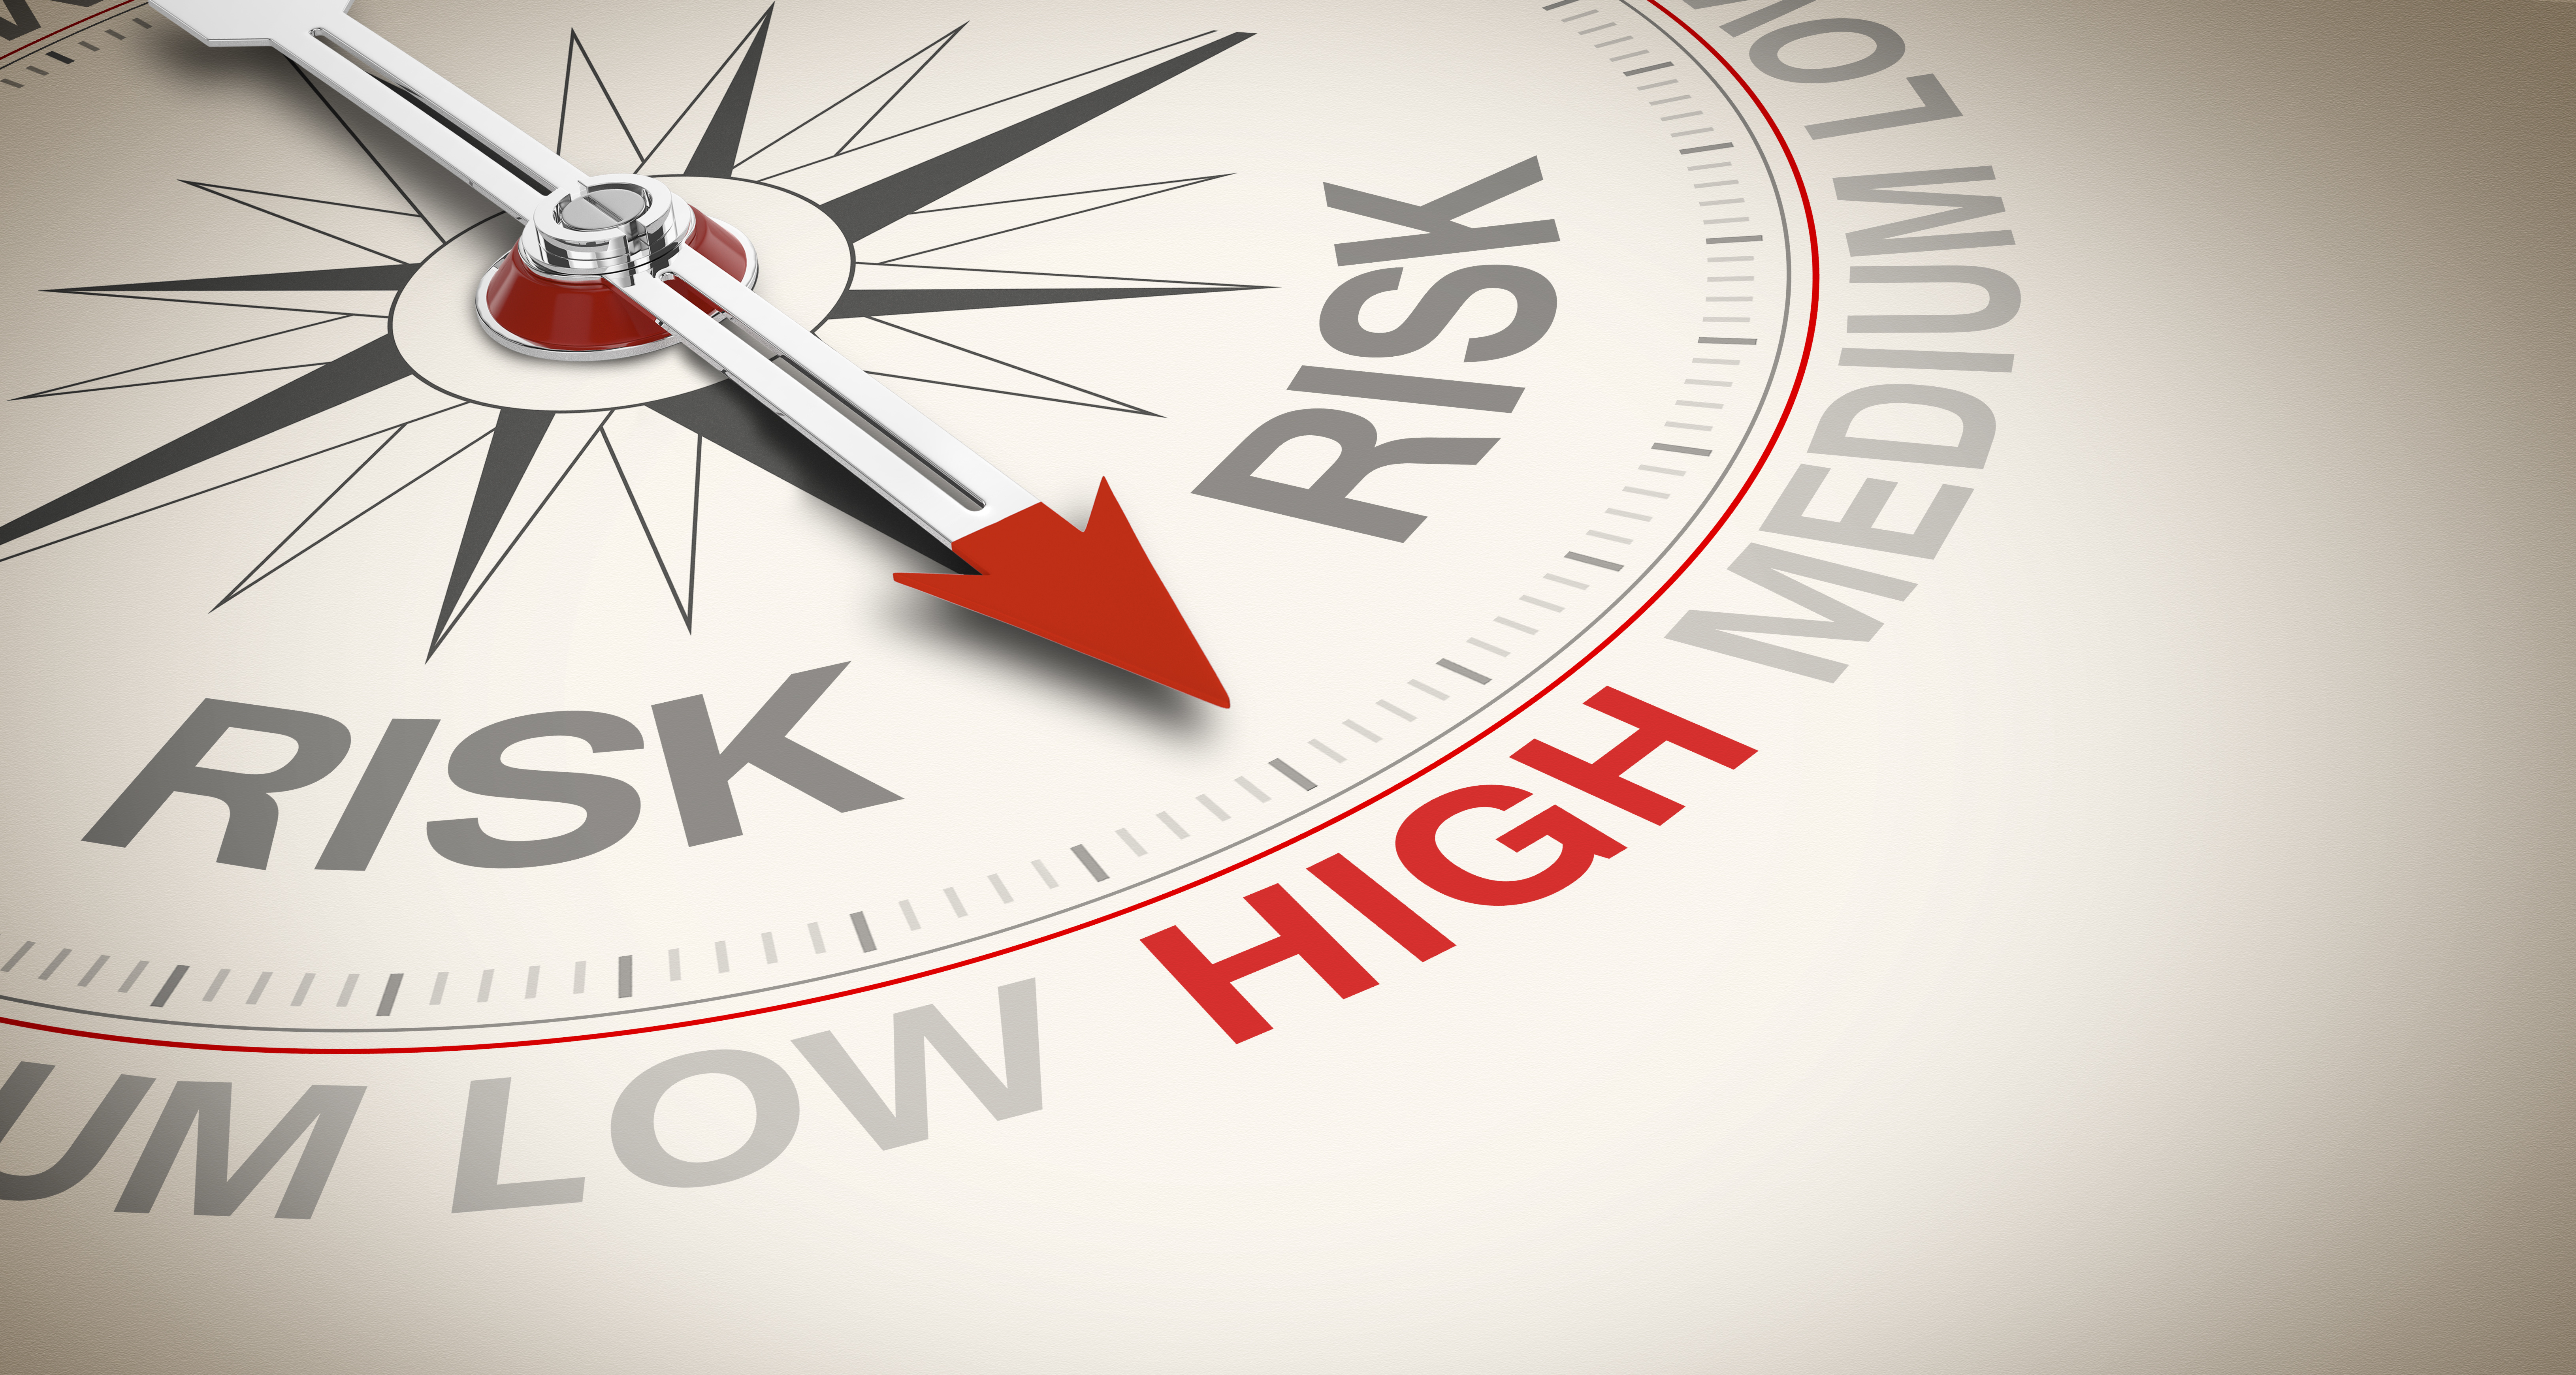 Four tips if your business is classified as high-risk